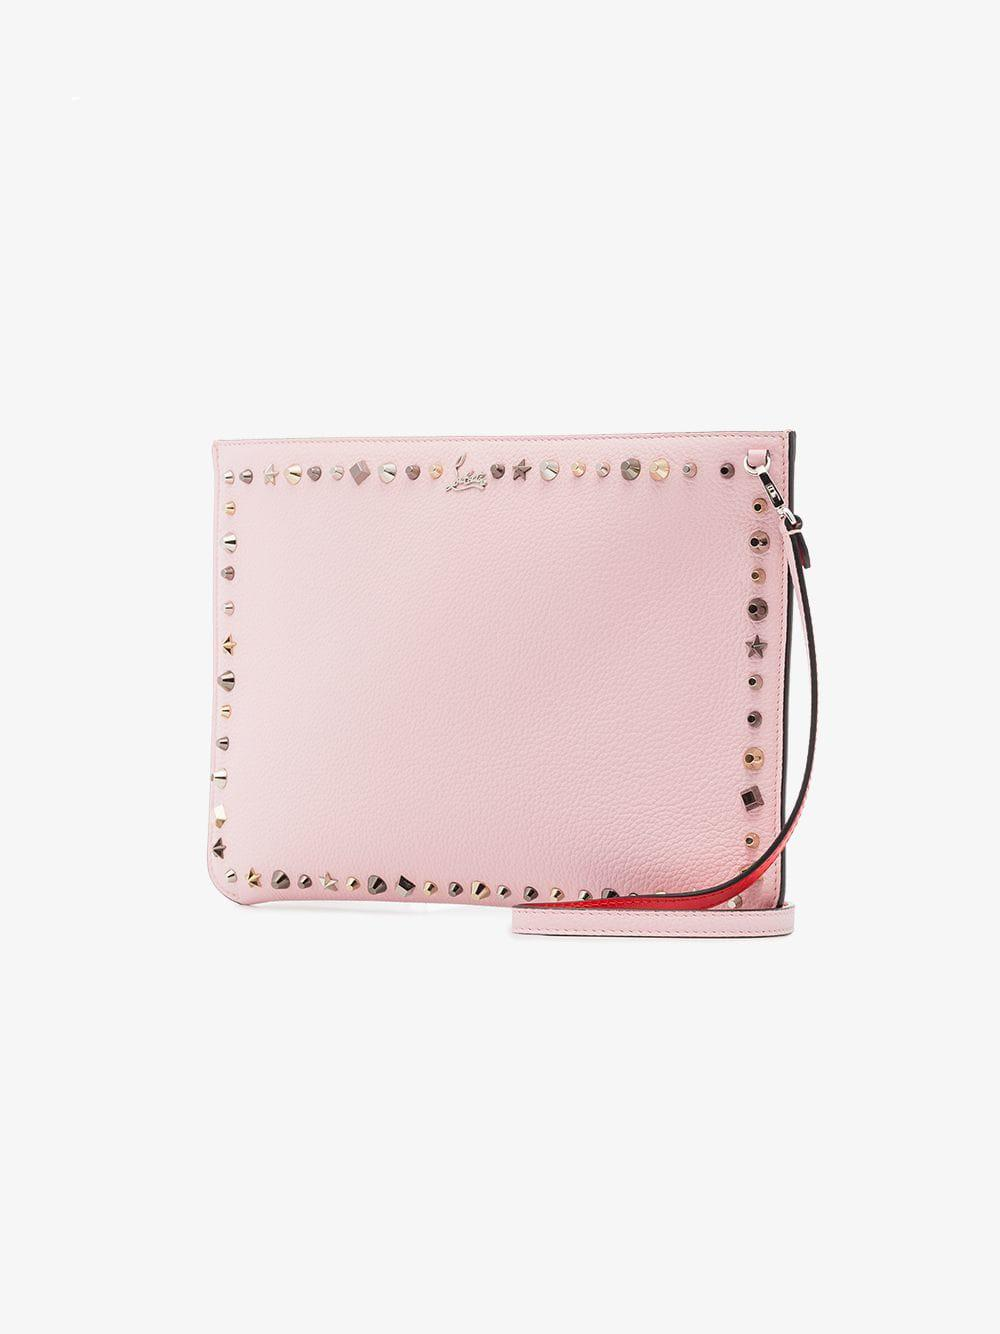 c897c584cf12 Christian Louboutin - Pink Empire Spike Embellished Leather Clutch - Lyst.  View fullscreen